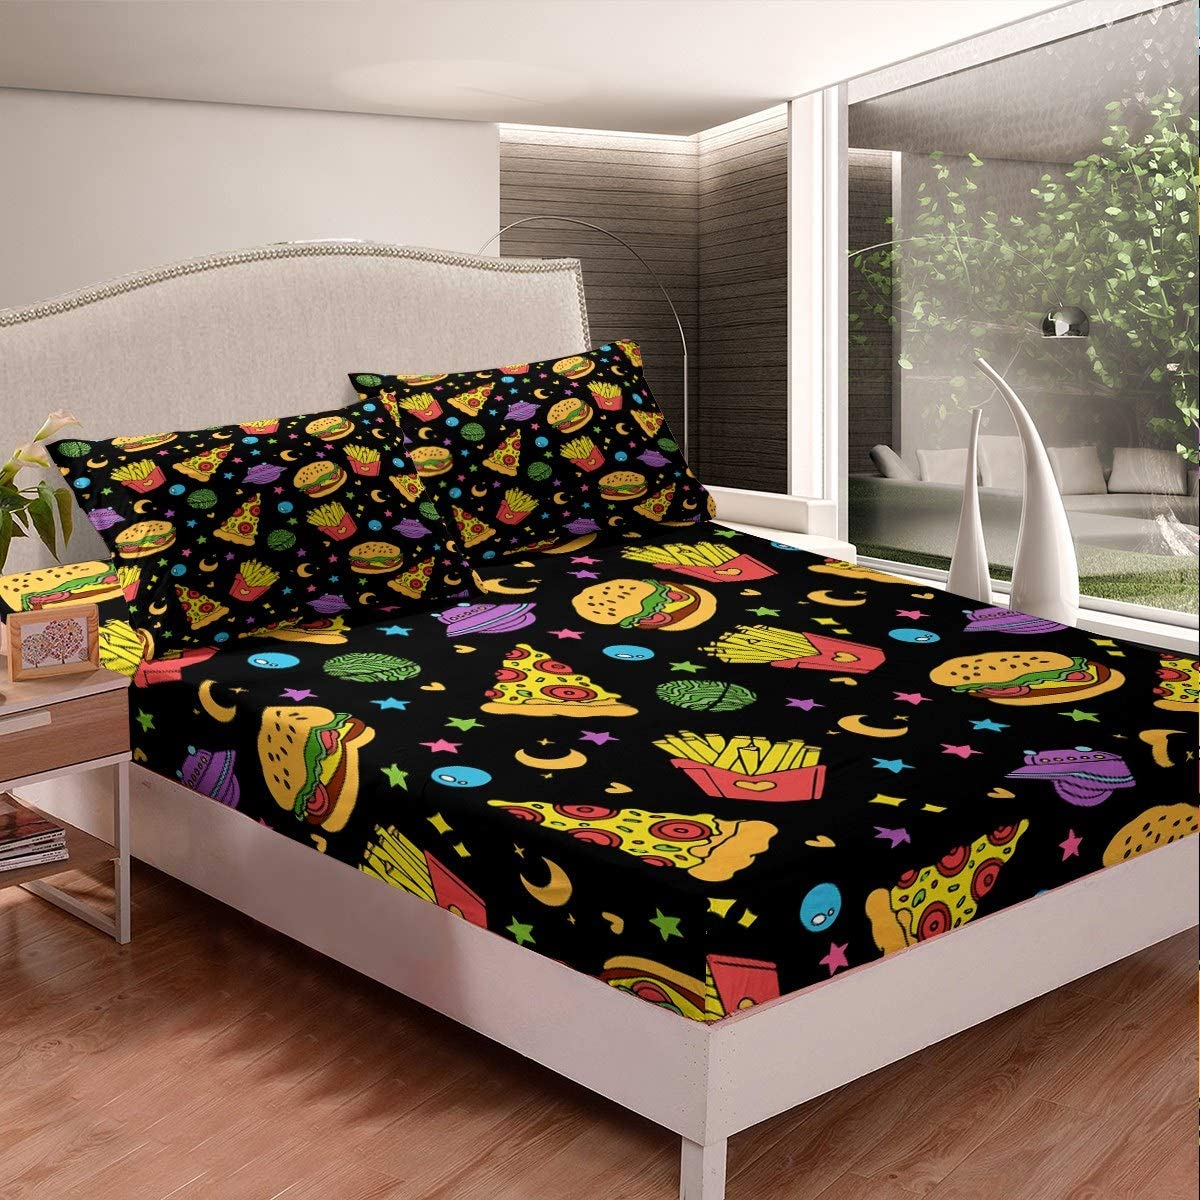 Fast Food Bedding Set for Kids Boys Girls Hamburg Pizza French Fries Bed Sheet Set Colorful Stars Fitted Sheet Delicious Food Bed Cover,Room Decor 2Pcs Sheets Twin Size